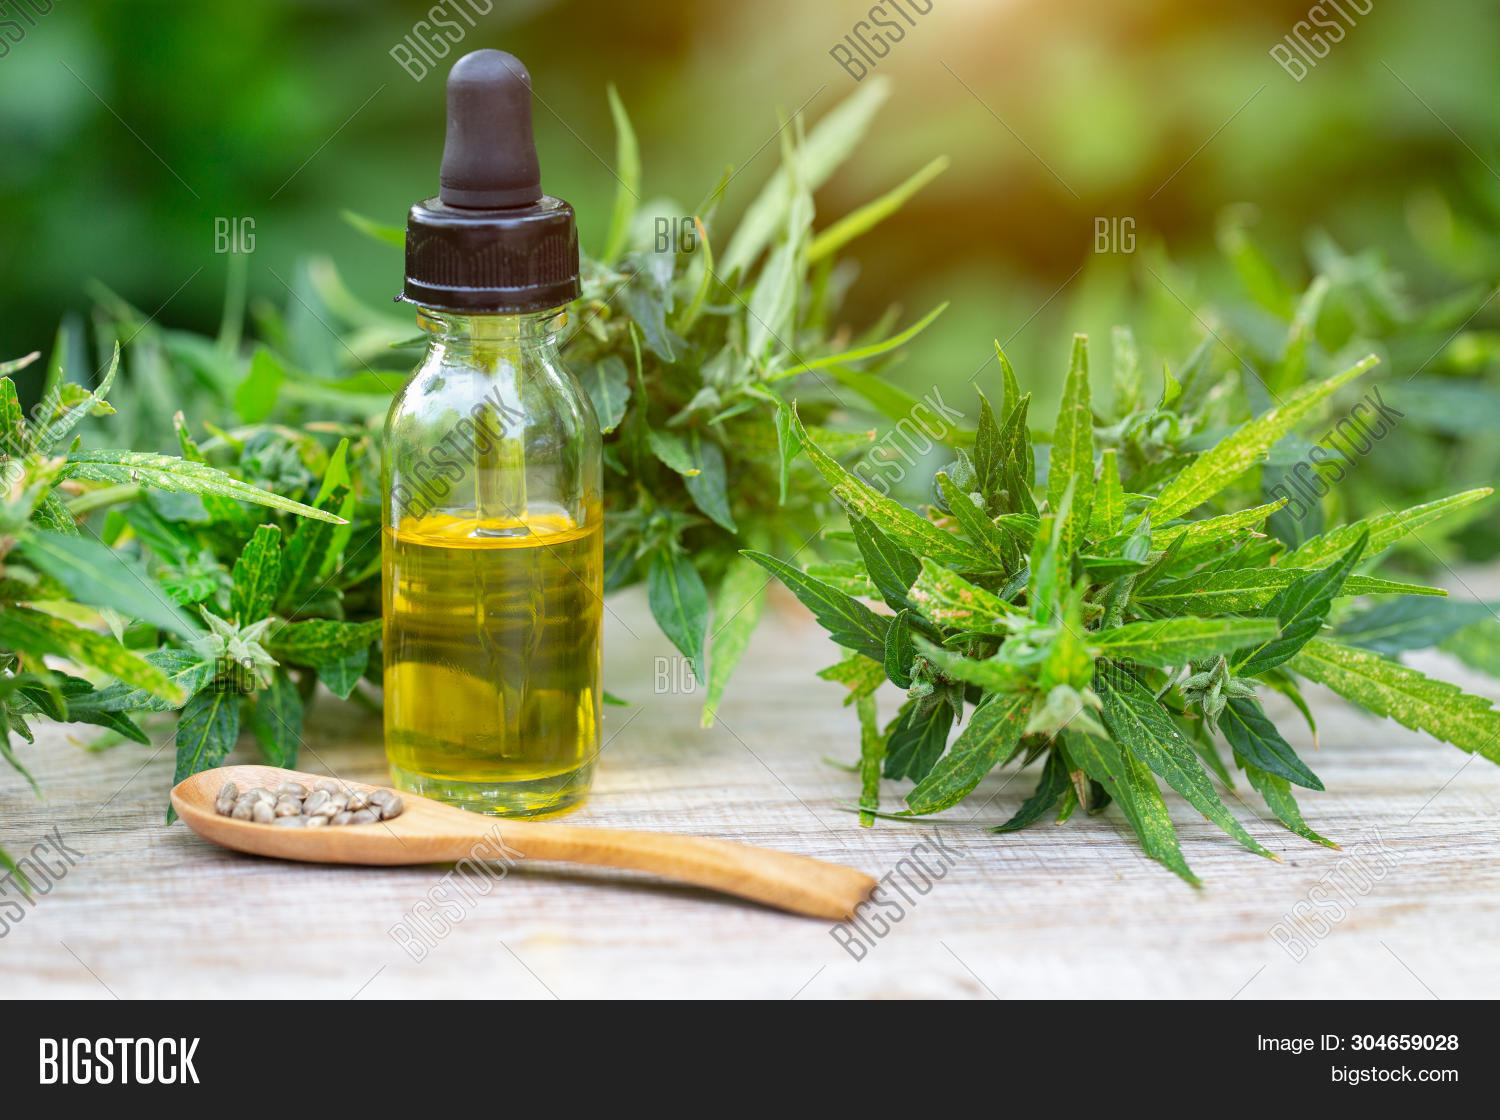 Cbd Oil Cannabis Image & Photo (Free Trial) | Bigstock